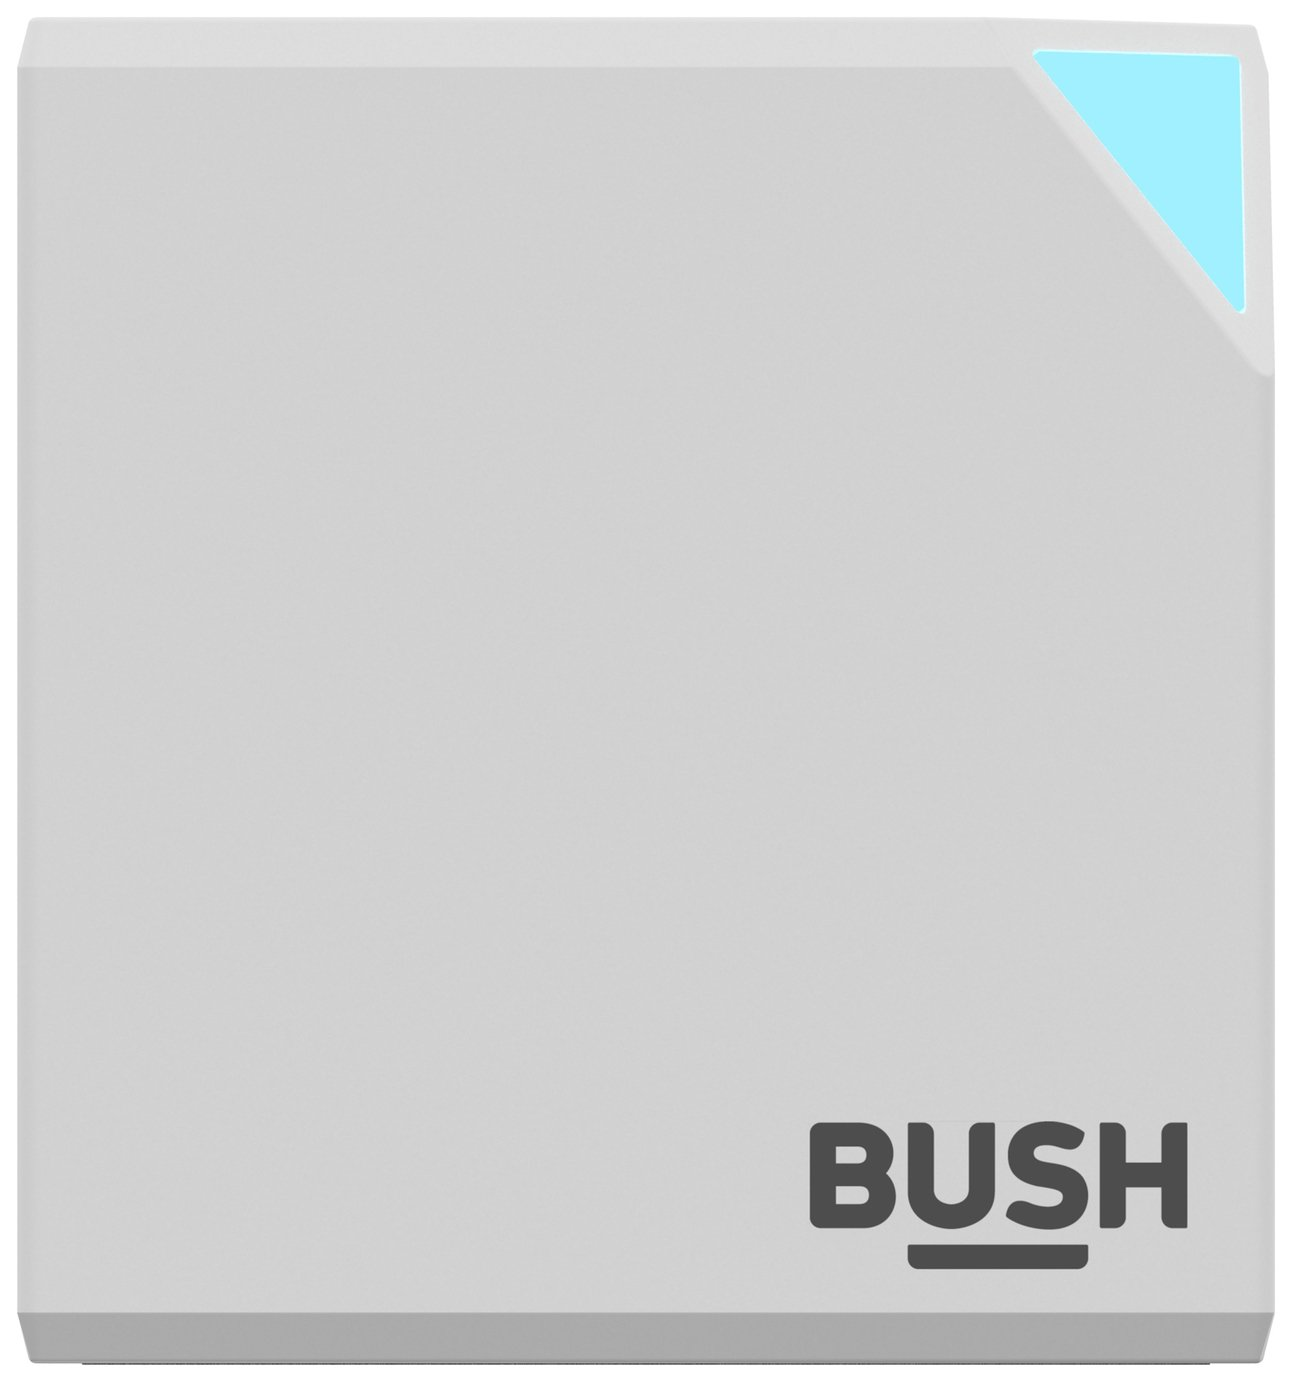 Bush Cube Wireless Speaker - White